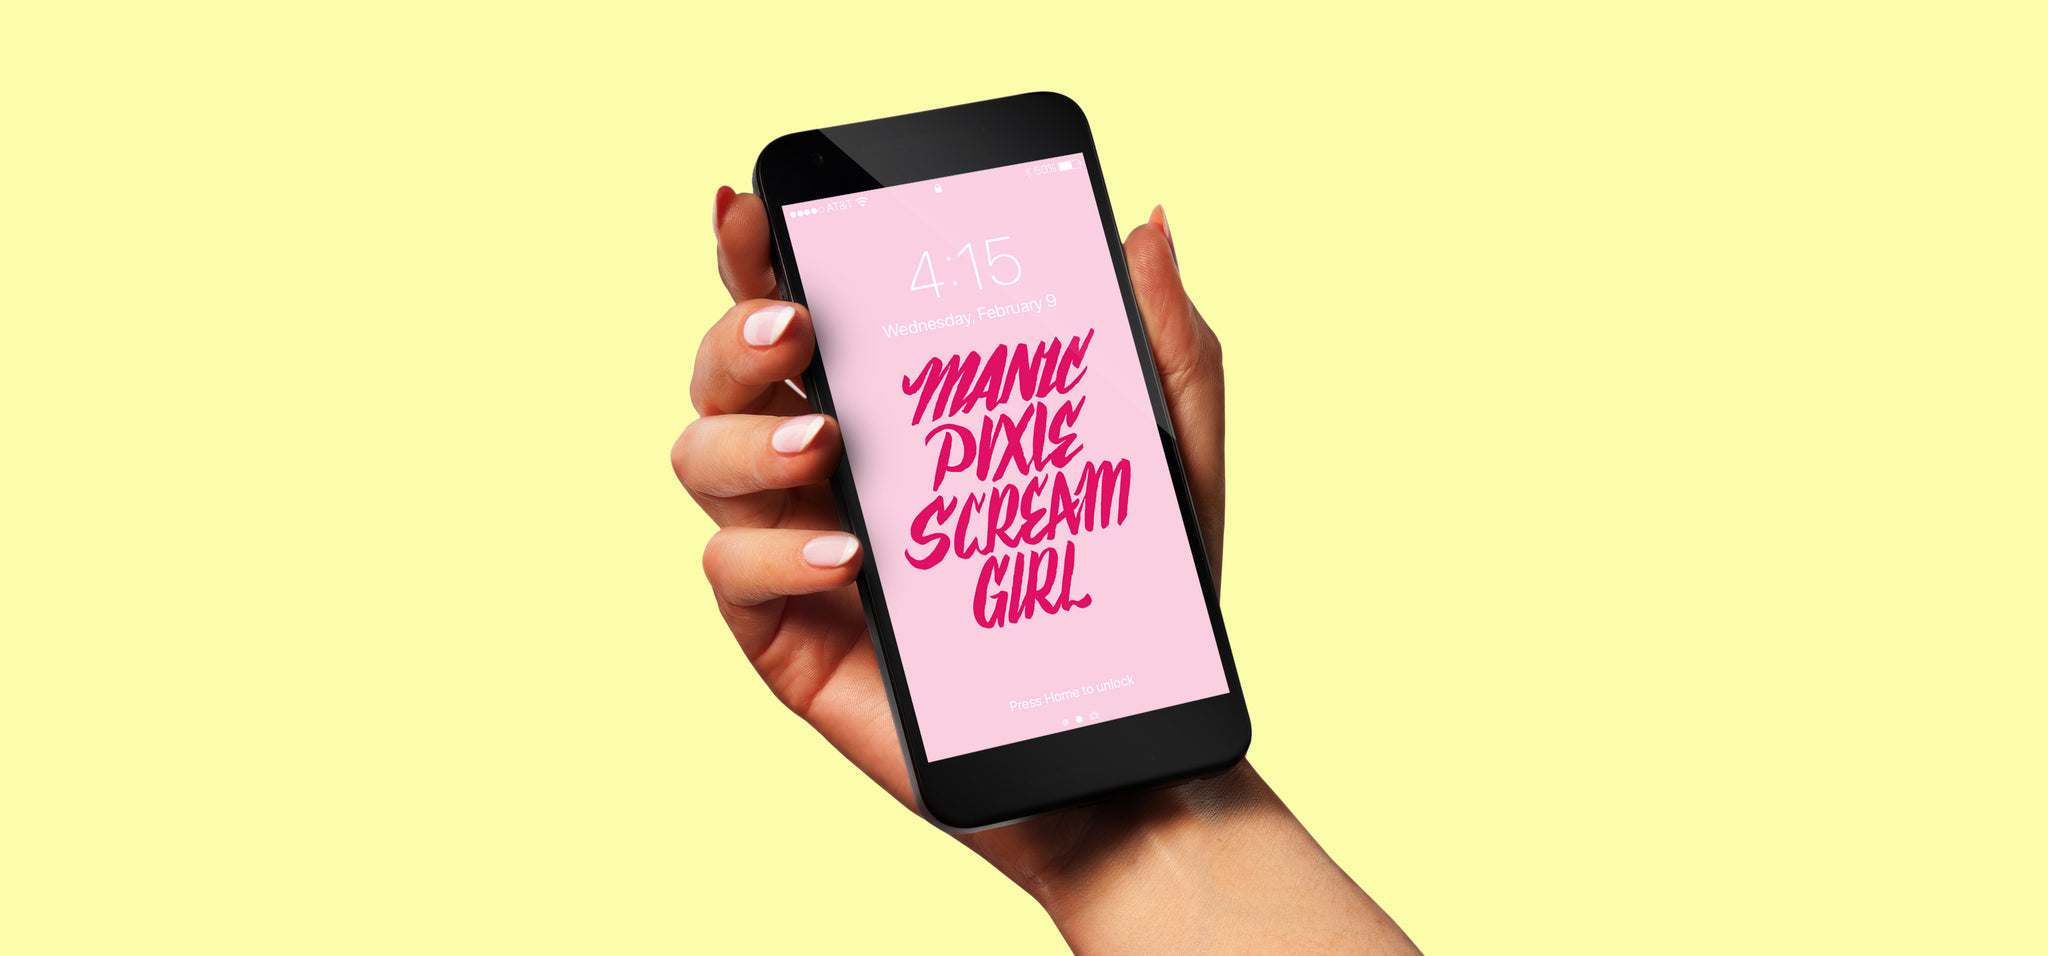 Manic Pixie Scream Girl | Free Phone Background